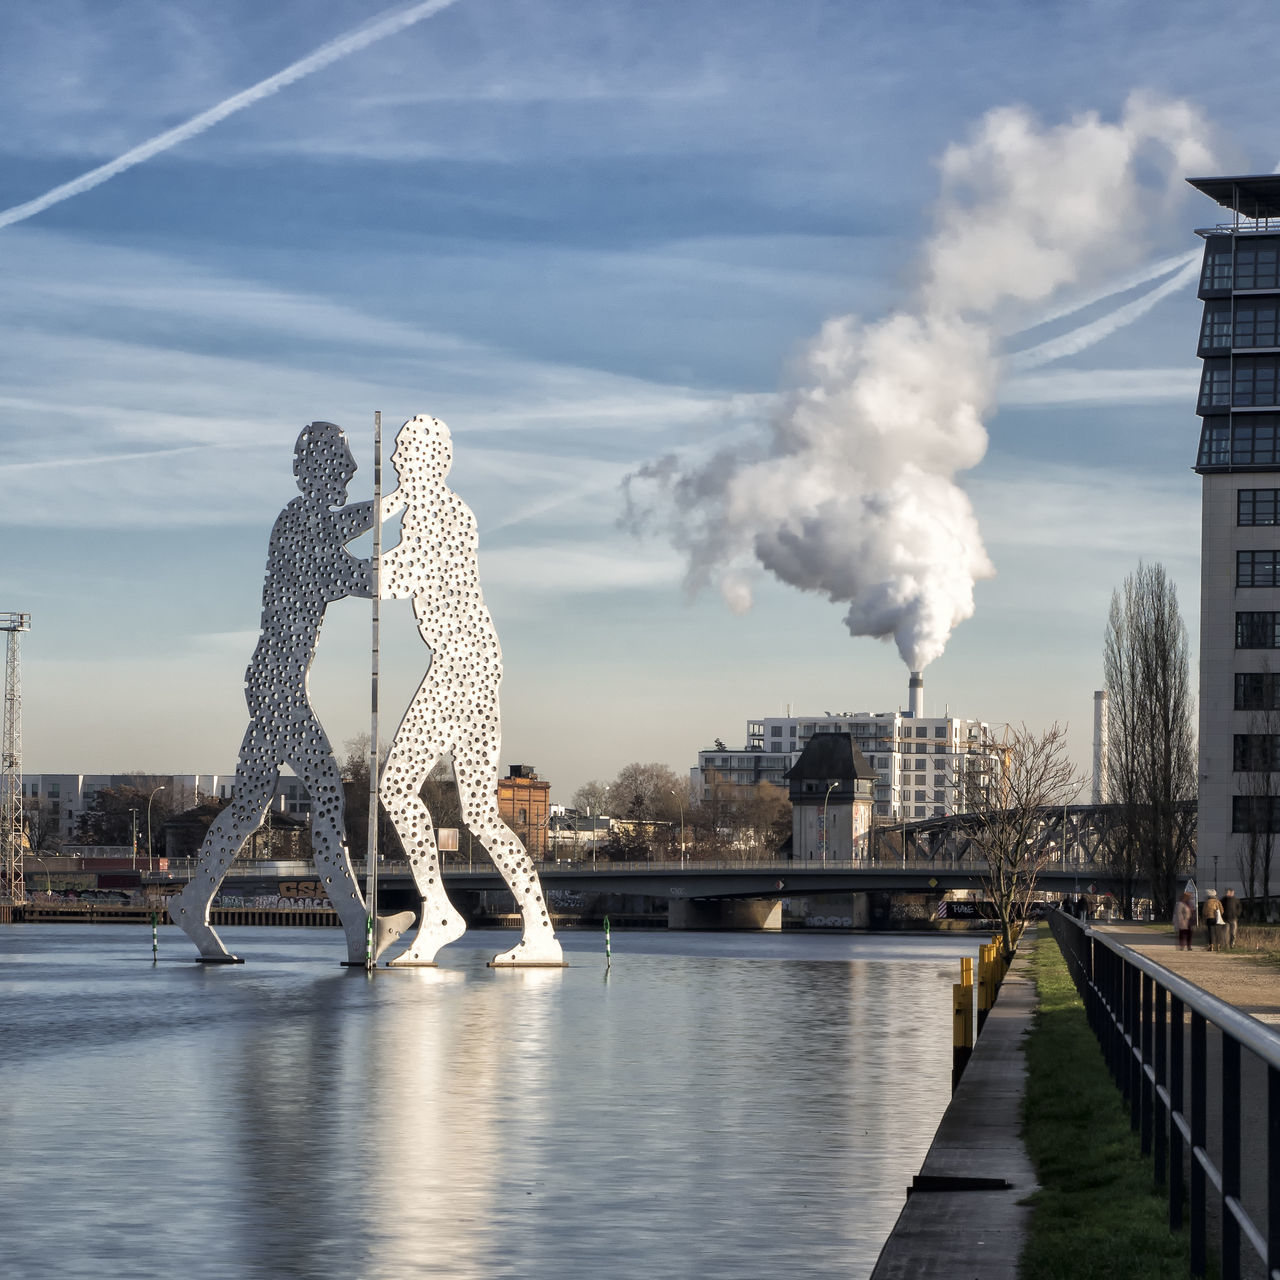 Architecture City Day Dramatic Sky Molecule Man No People Outdoors Reflection Reflections River Sky Smoke - Physical Structure Spree Urban Urban Landscape Water Capture Berlin